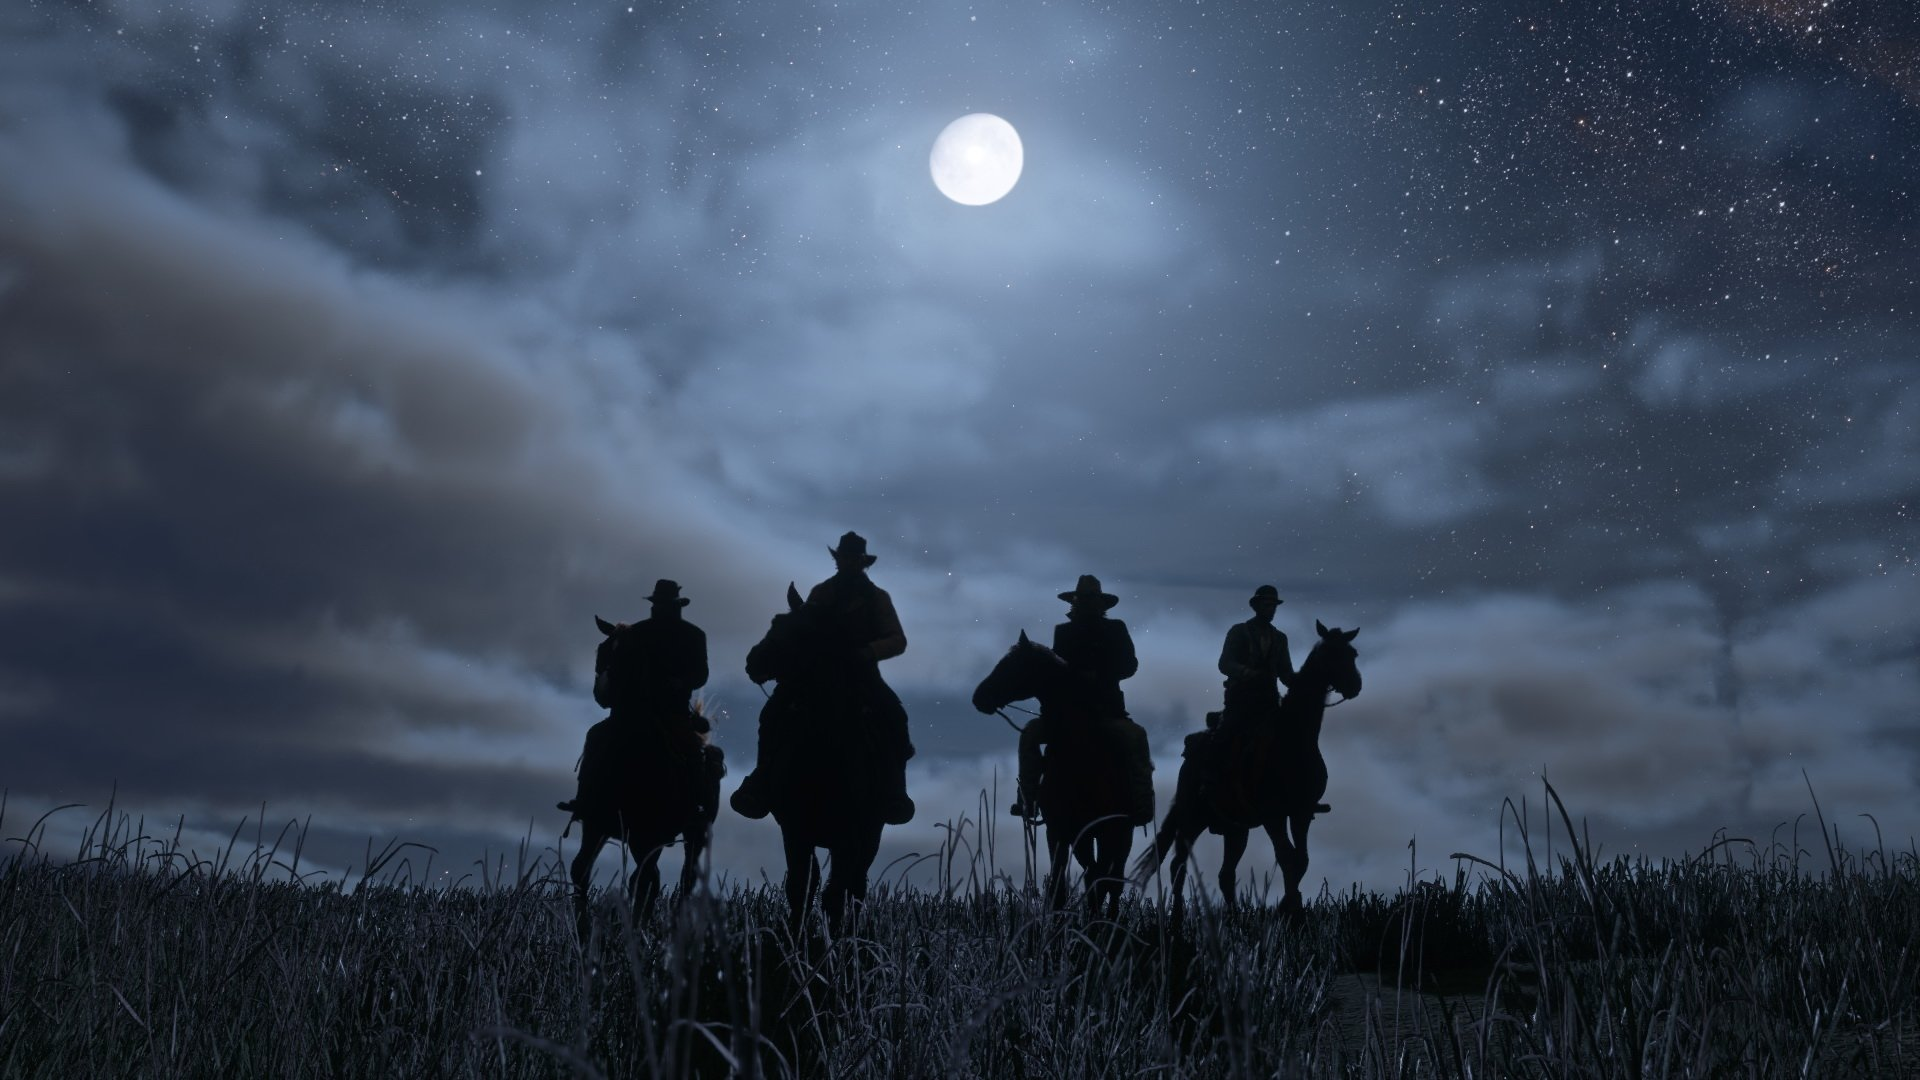 198 Red Dead Redemption 2 Hd Wallpapers Background Images